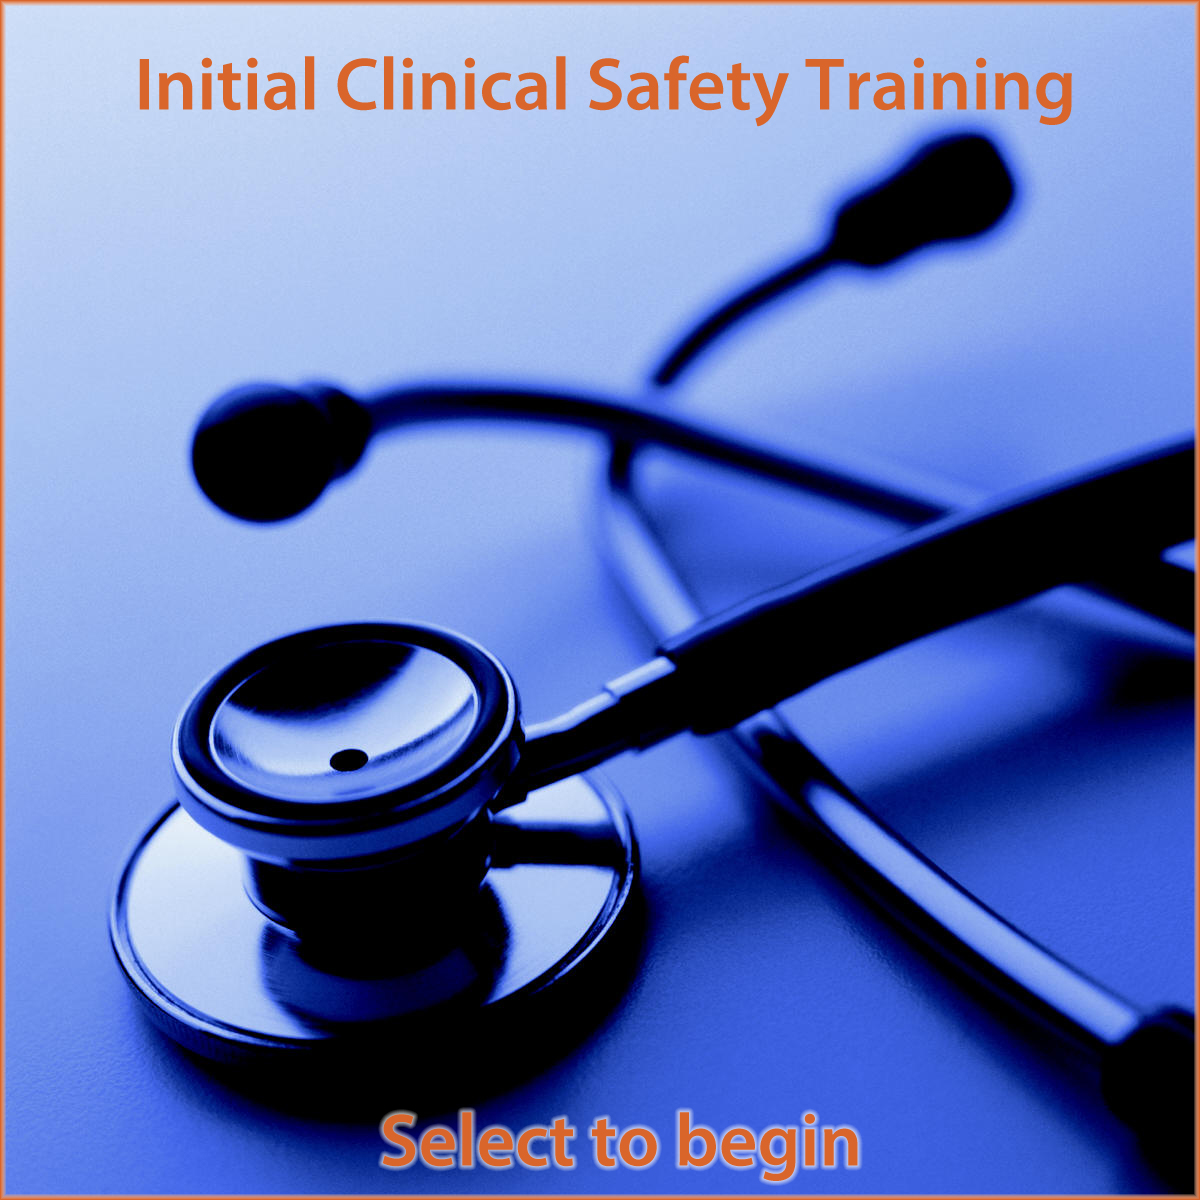 Initial Clinical Safety Training